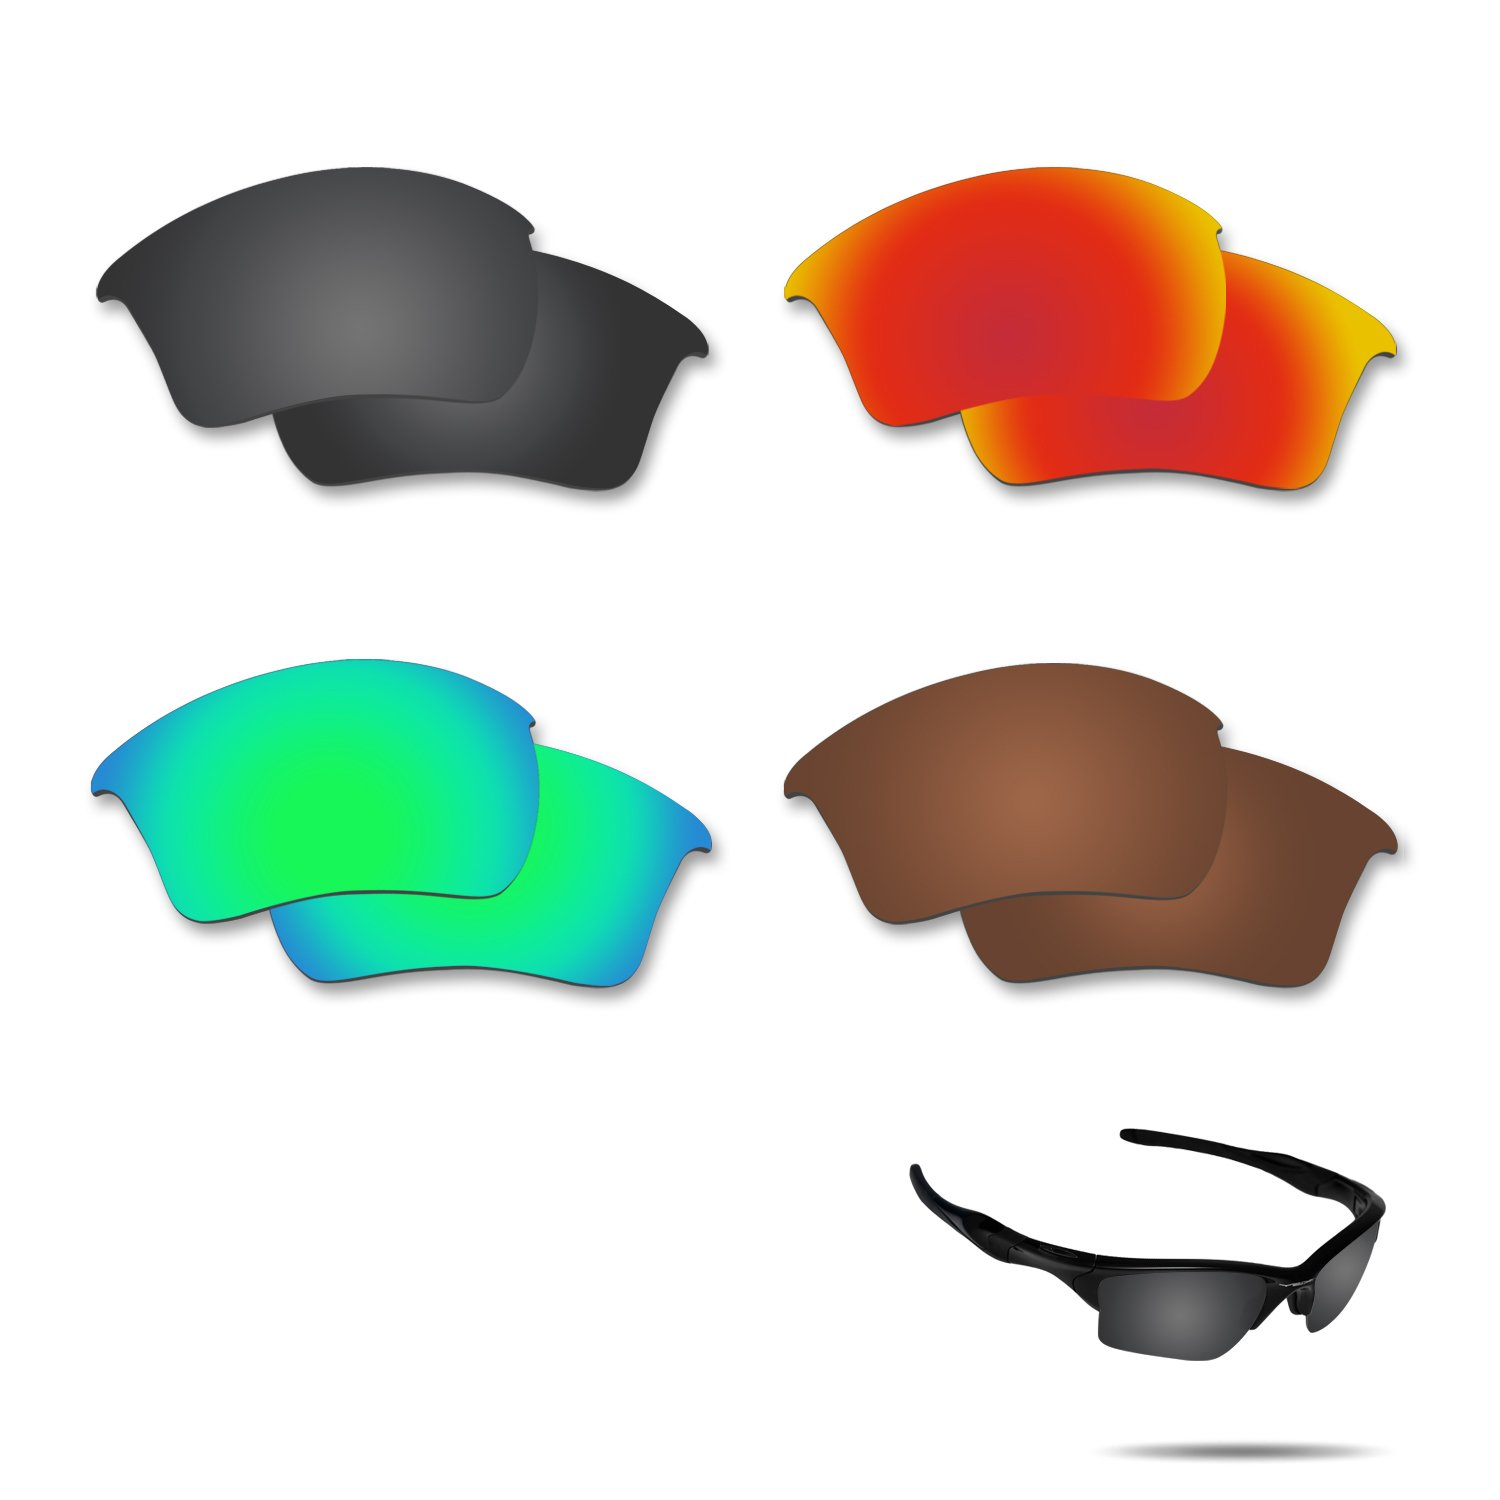 Fiskr Anti-saltwater Polarized Replacement Lenses for Oakley Half Jacket 2.0 XL Sunglasses 4 Pairs by Fiskr